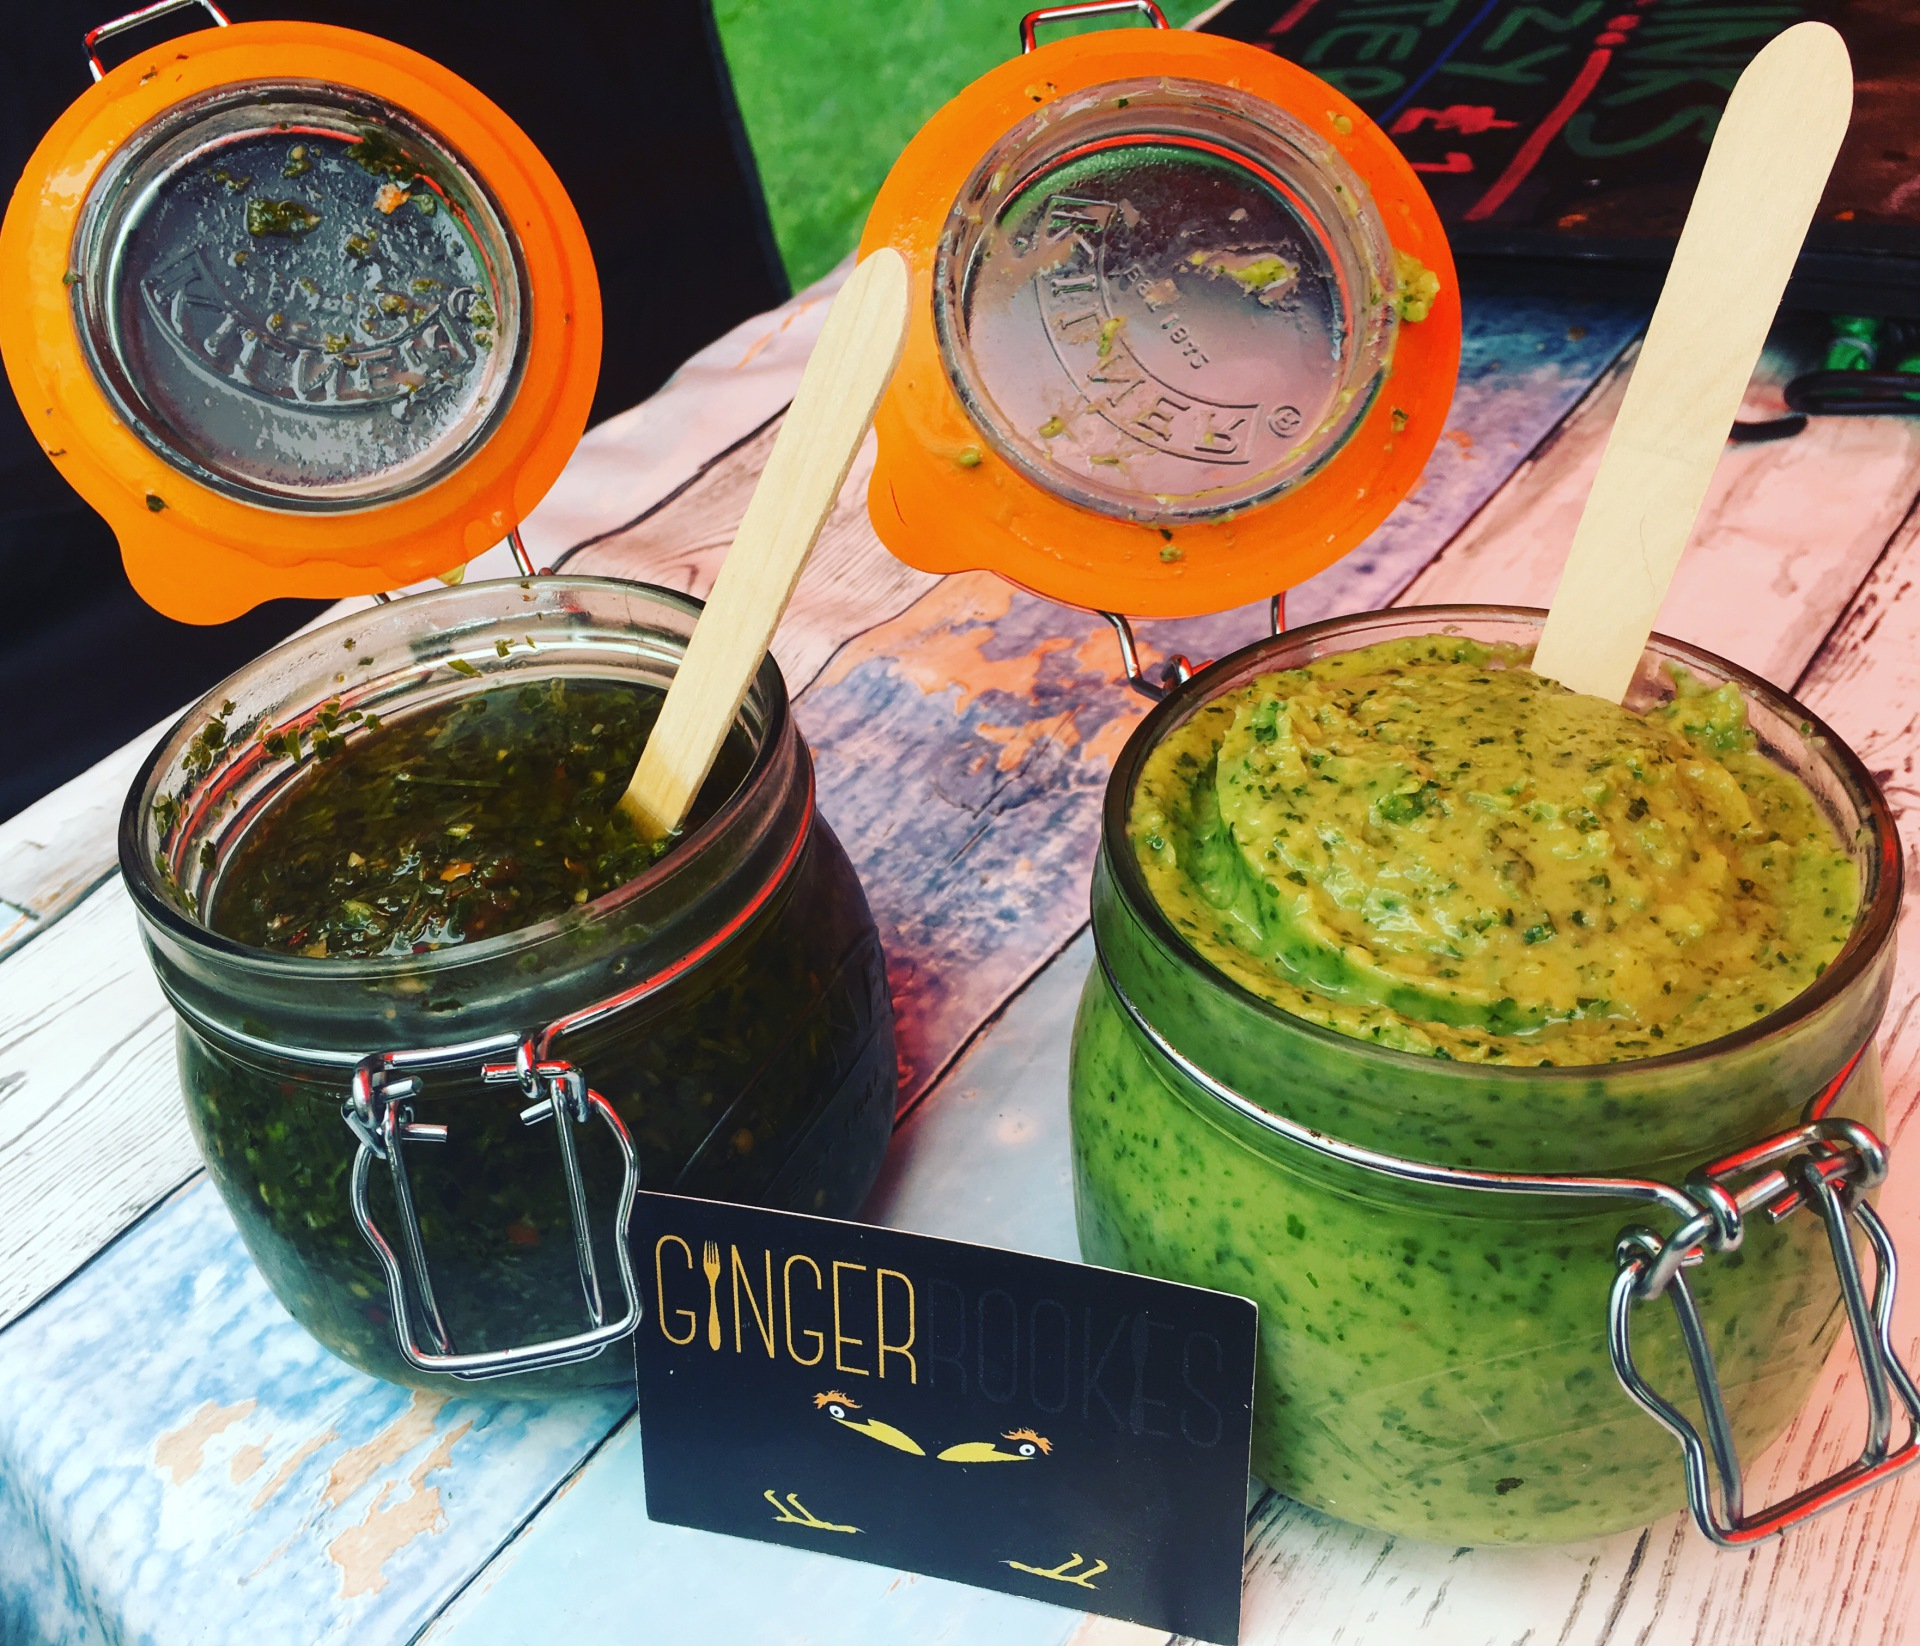 Chimichurri and Jalavocado looking the part